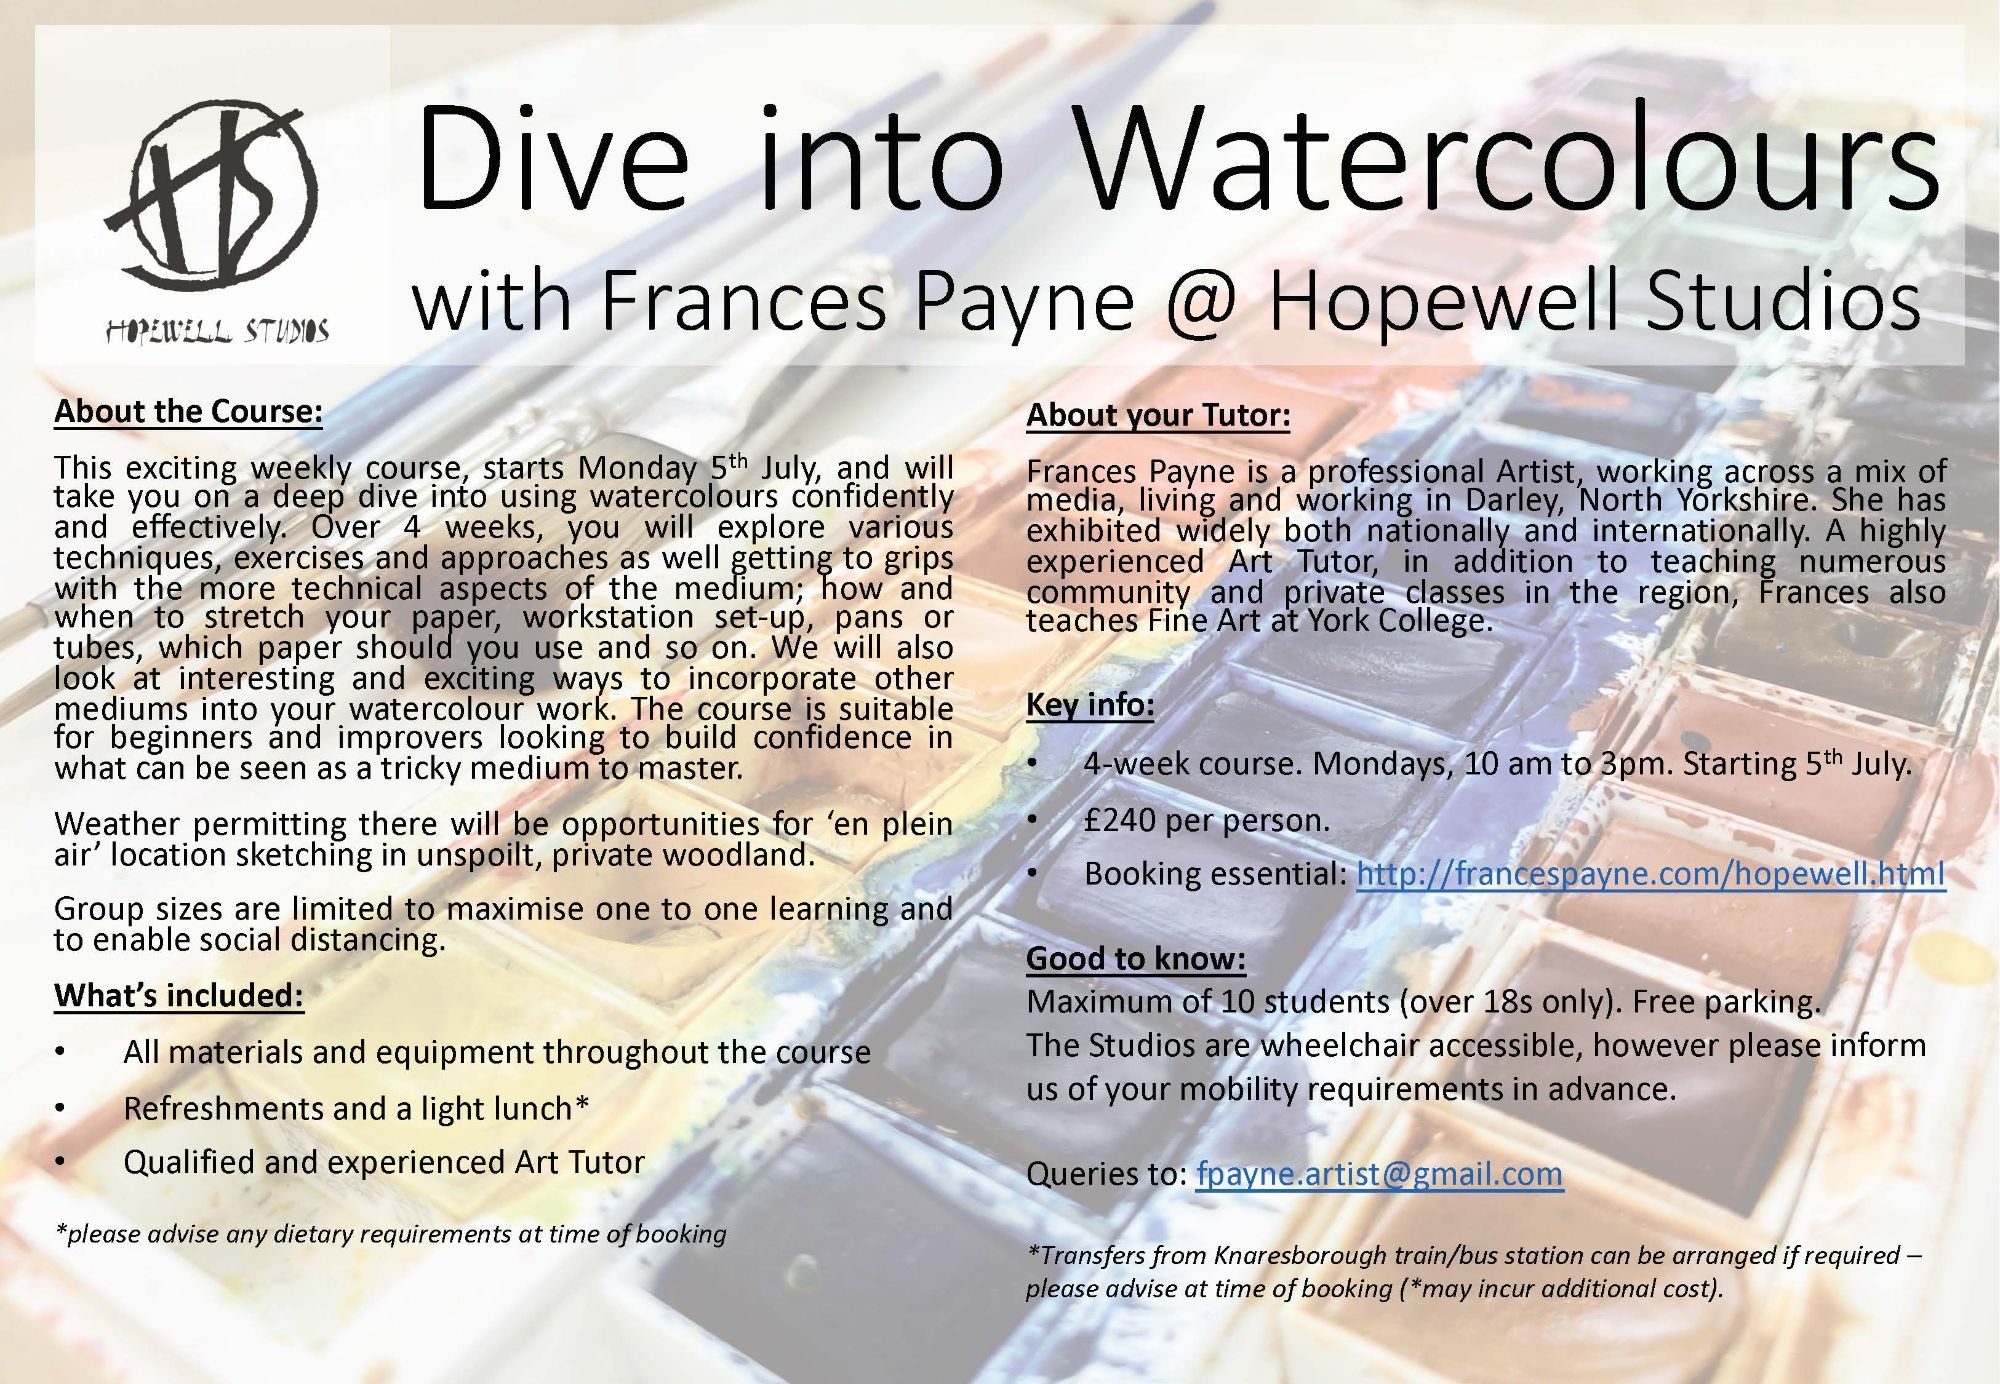 Art Classes at Hopewell Studios with Frances Payne Artist